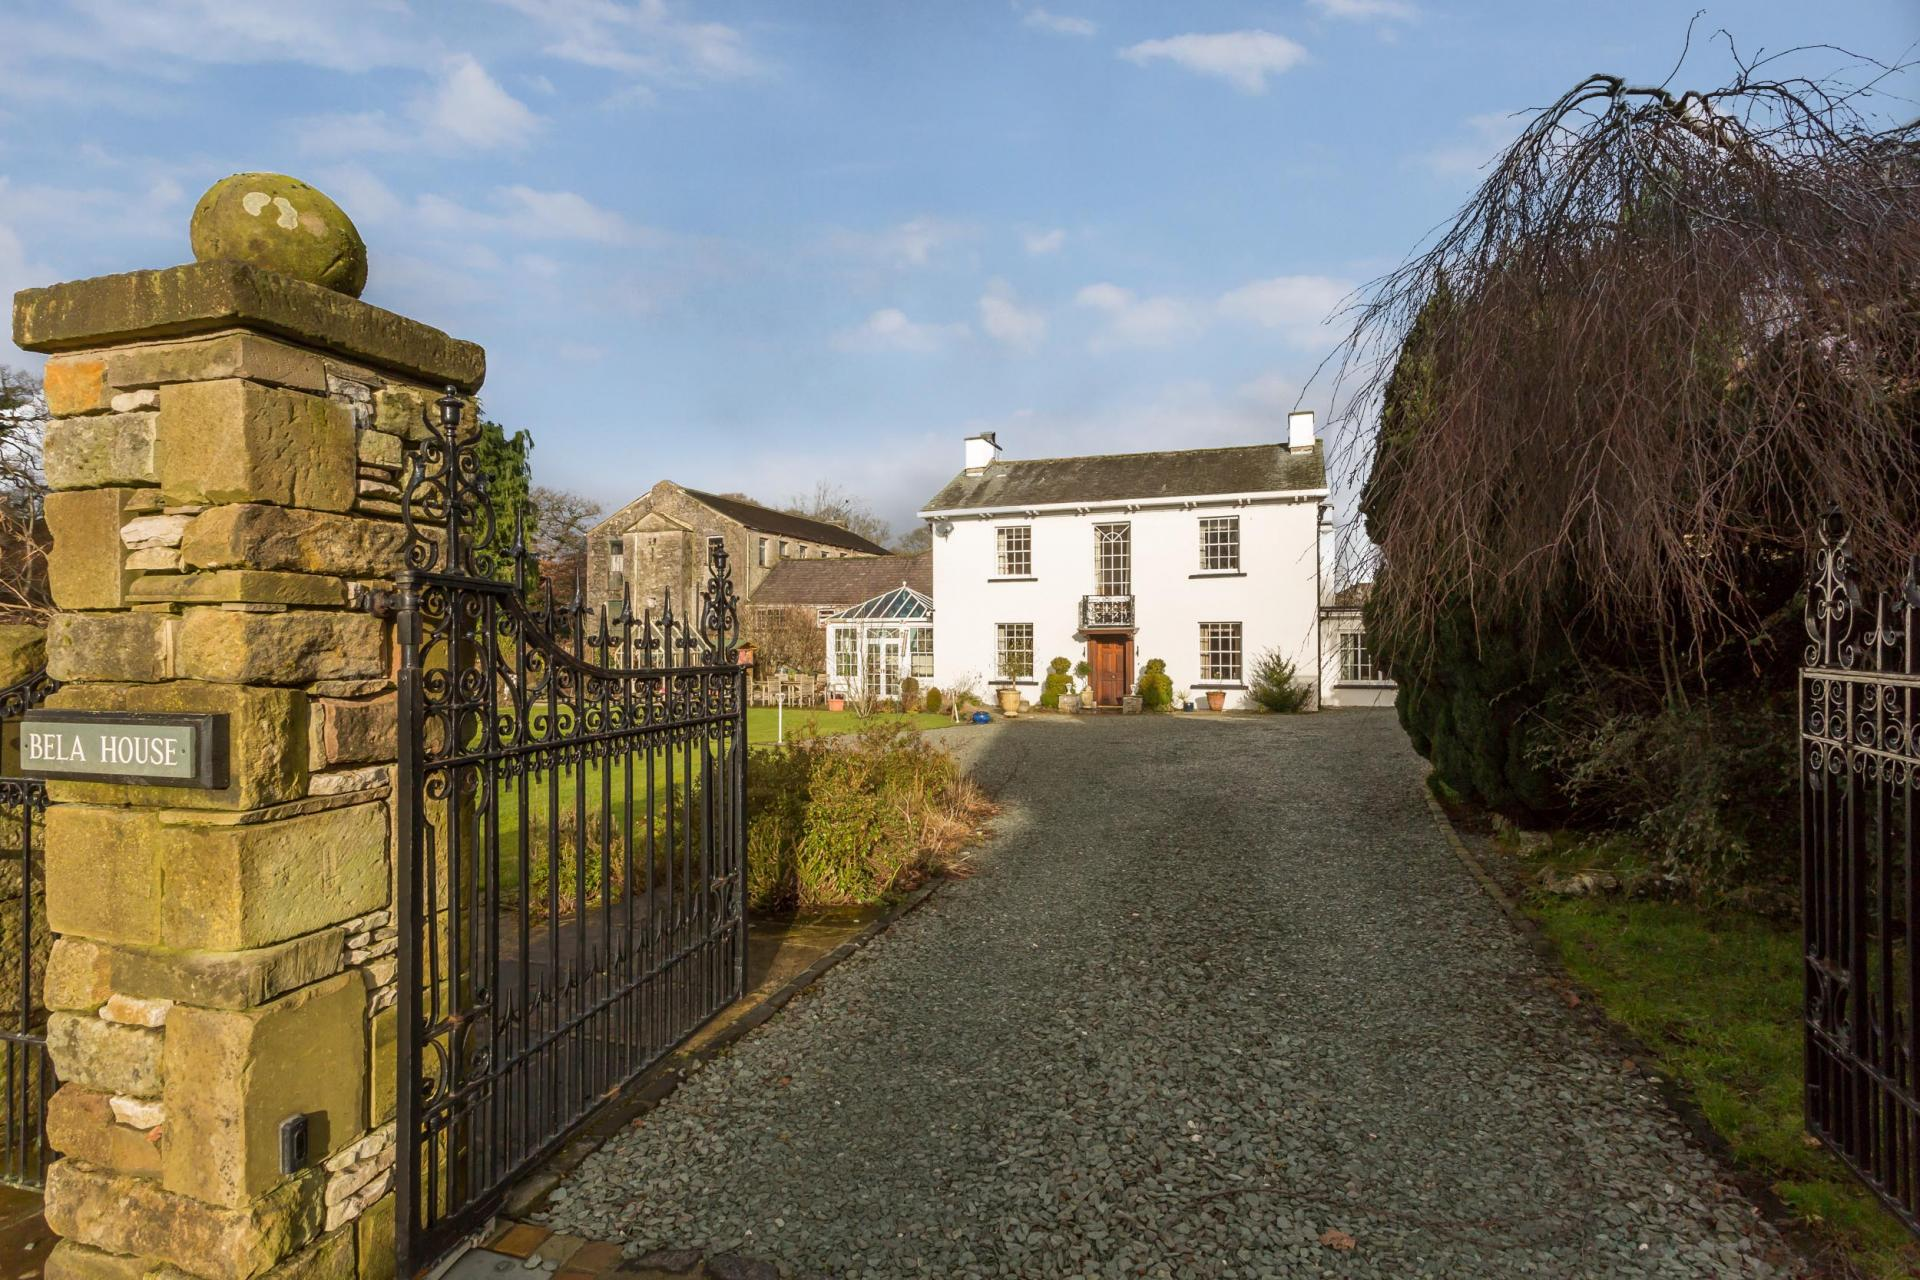 £875,000 - Milnthorpe, Cumbria - 4 bedrooms